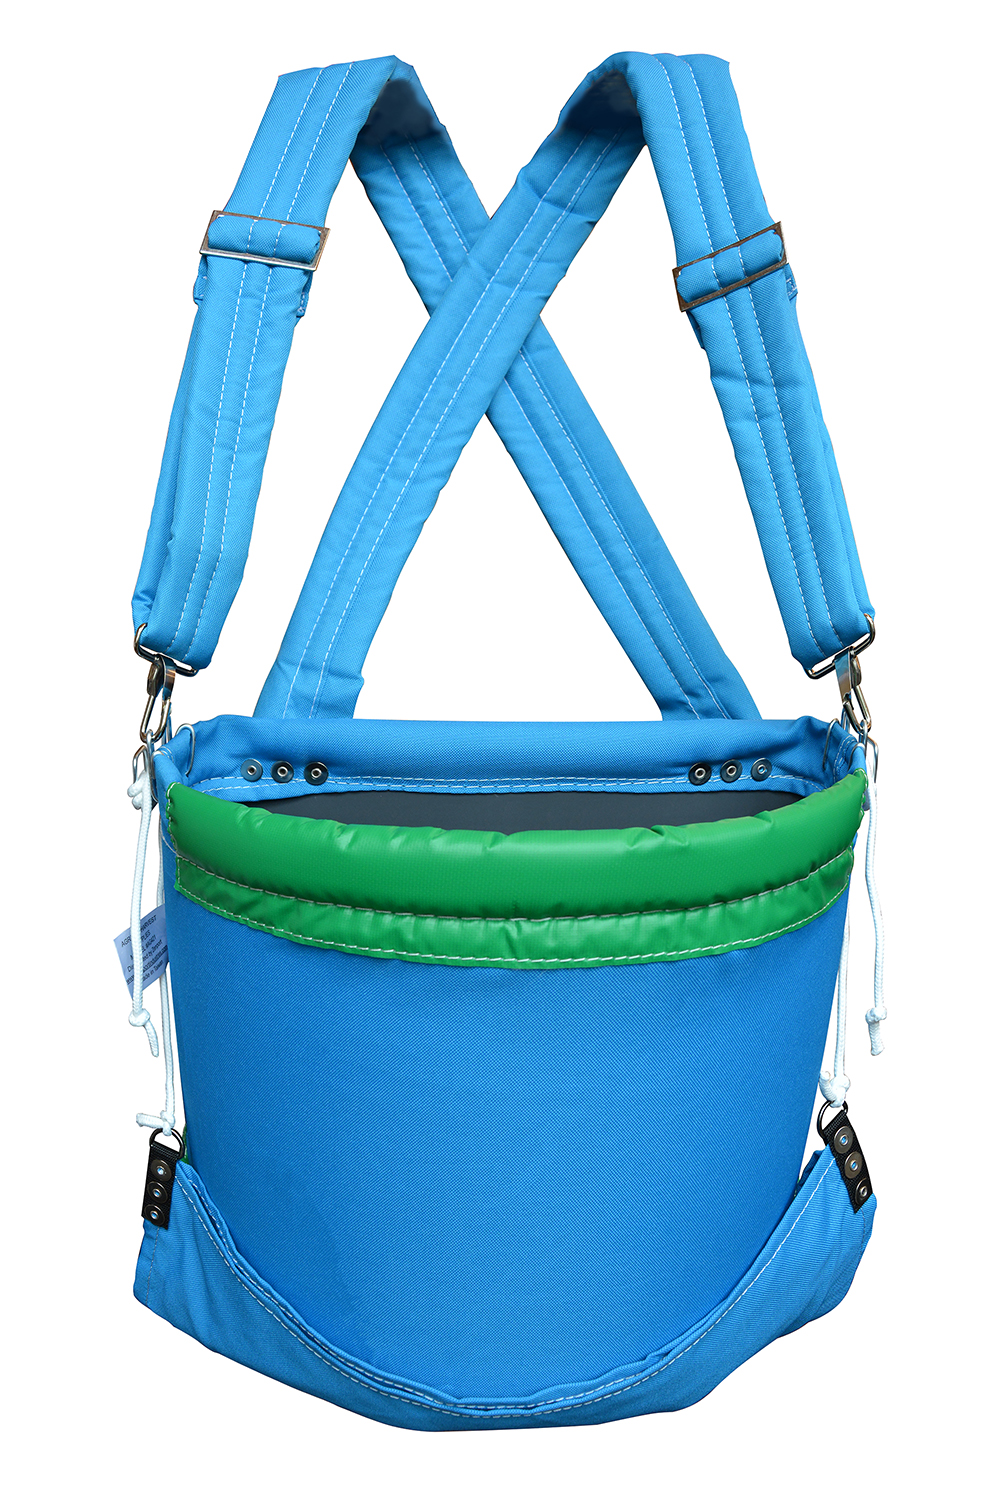 Fruit Picking Bags Buckets Pails Totes